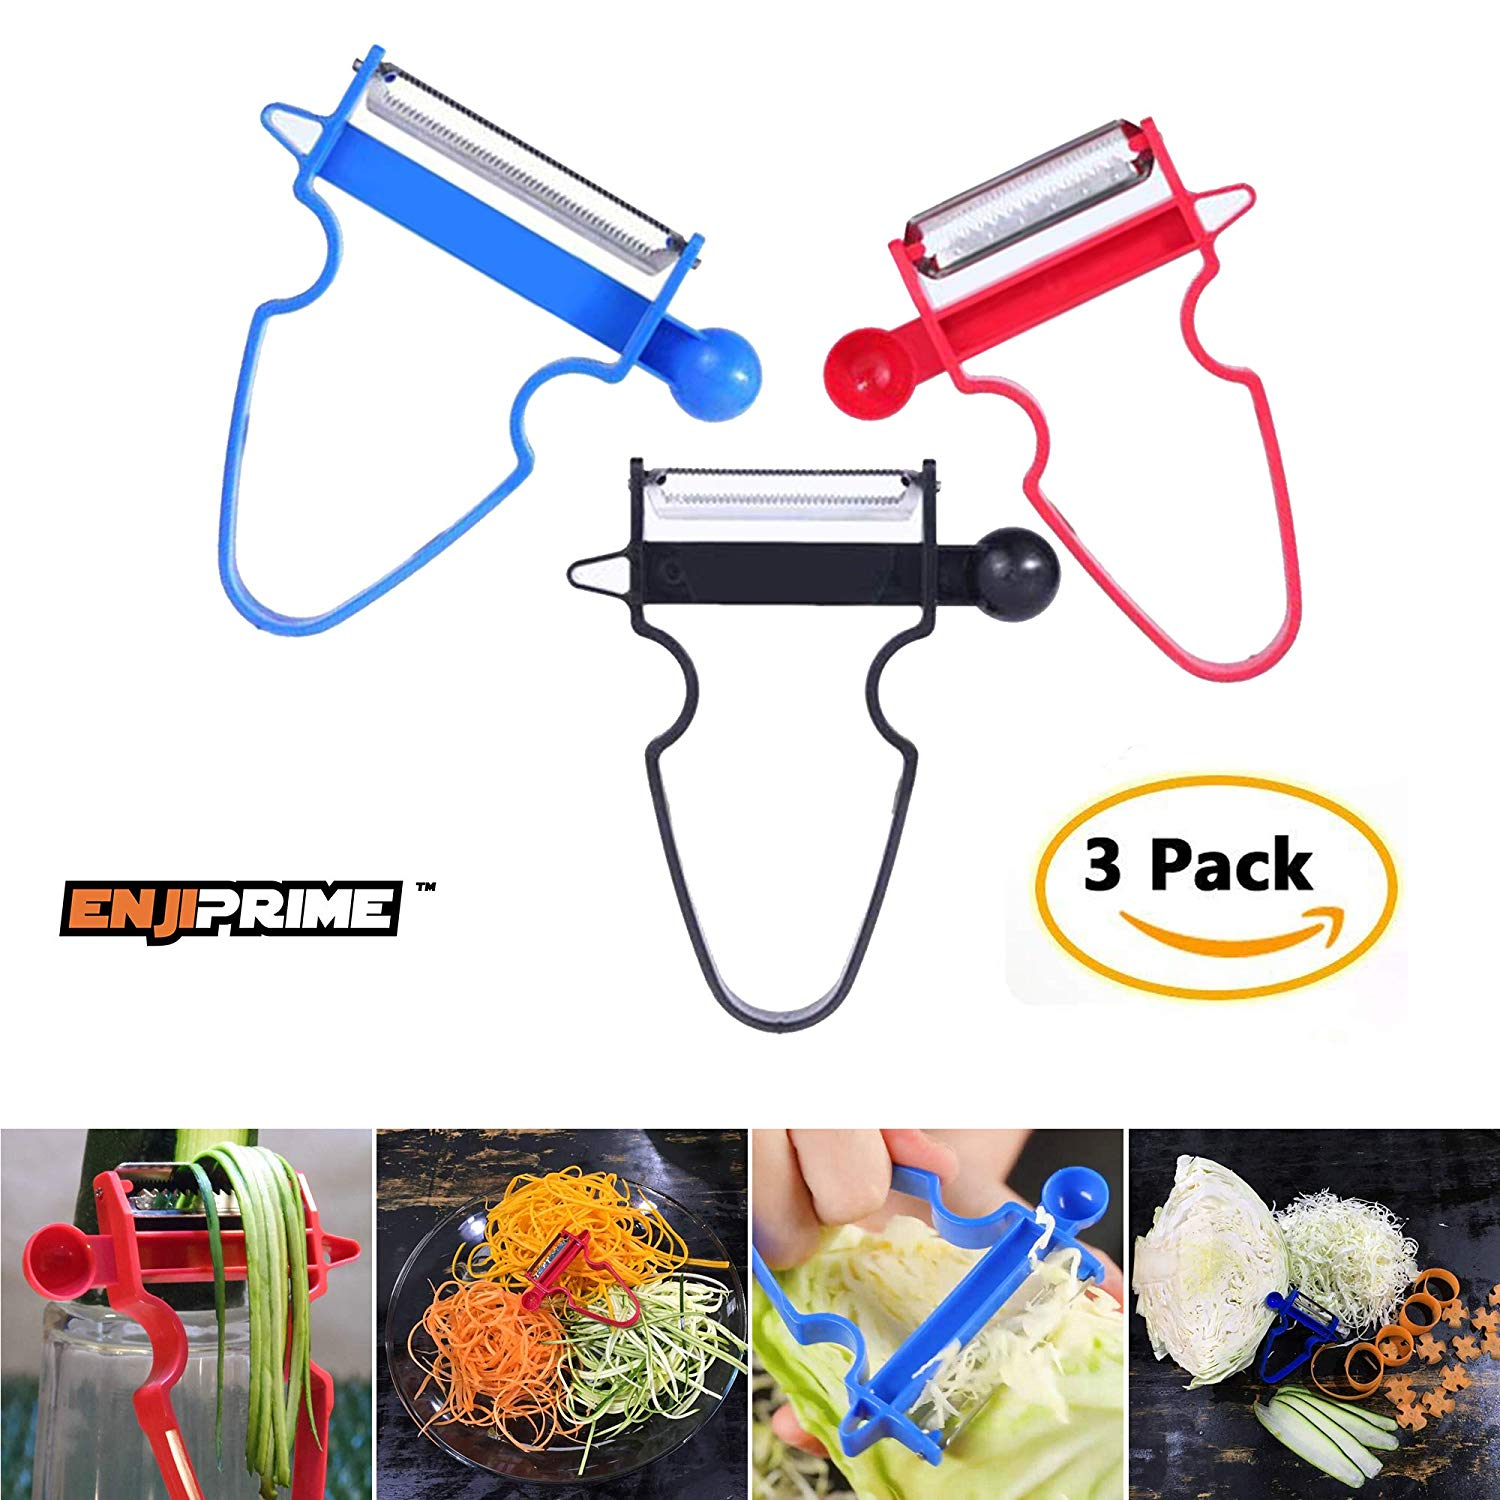 Magic Trio Peelers Slicers Shredders For Fruits and Vegetables - Spiralizer, Julienne Clever Cutter, Multifunction Kitchen Helper, Picador de Verduras (set of 3)